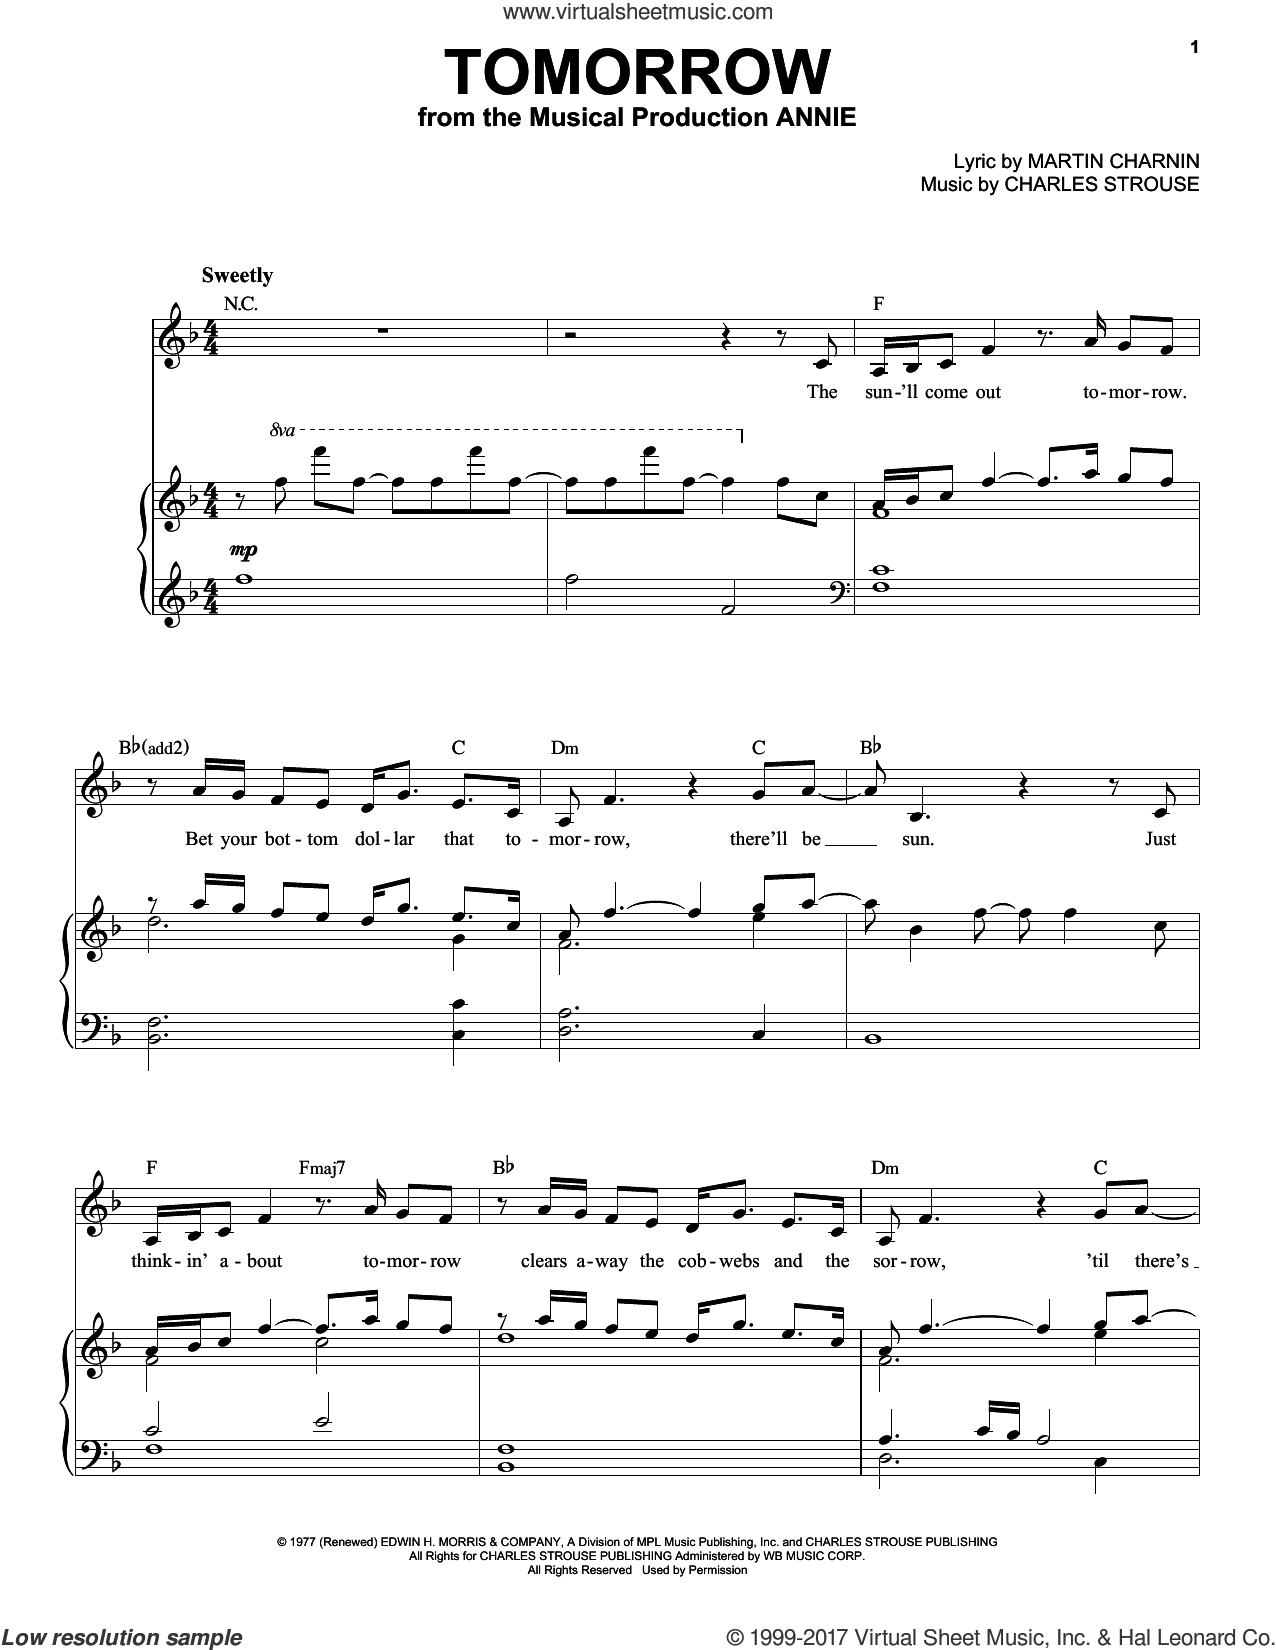 Tomorrow sheet music for voice and piano (High Voice) by Martin Charnin and Charles Strouse, intermediate skill level